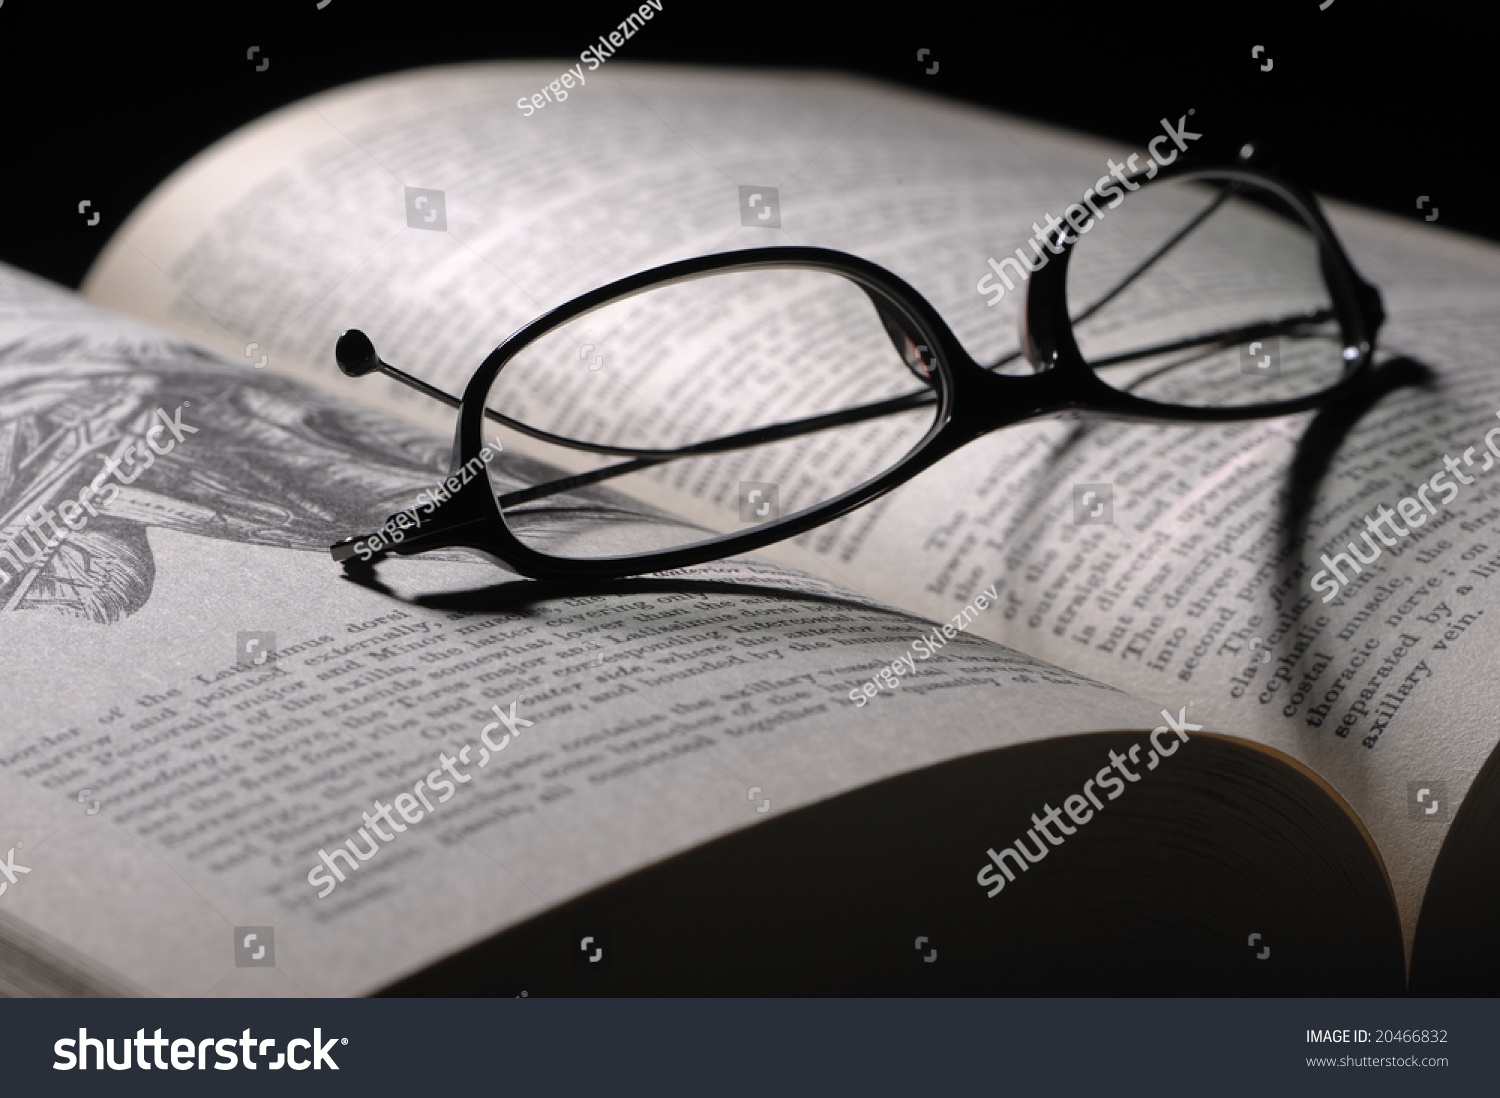 Reading Glasses On Anatomy Guide Stock Photo (Safe to Use) 20466832 ...